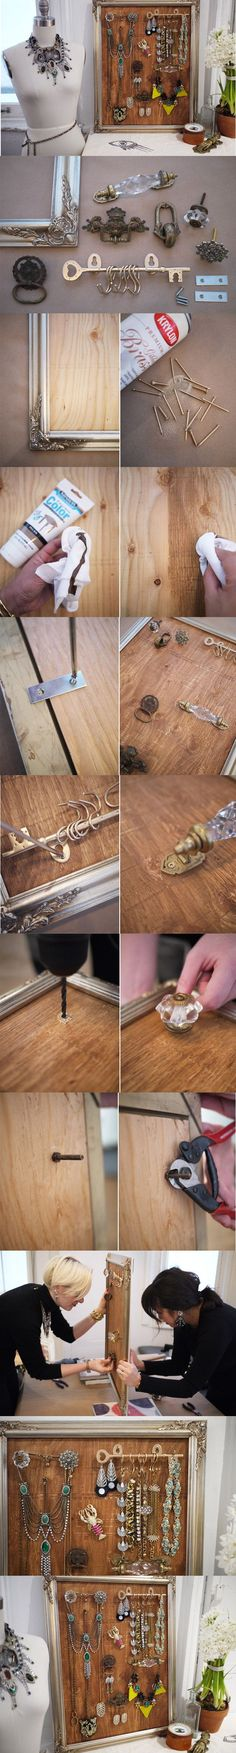 Cool DIY jewelry display idea